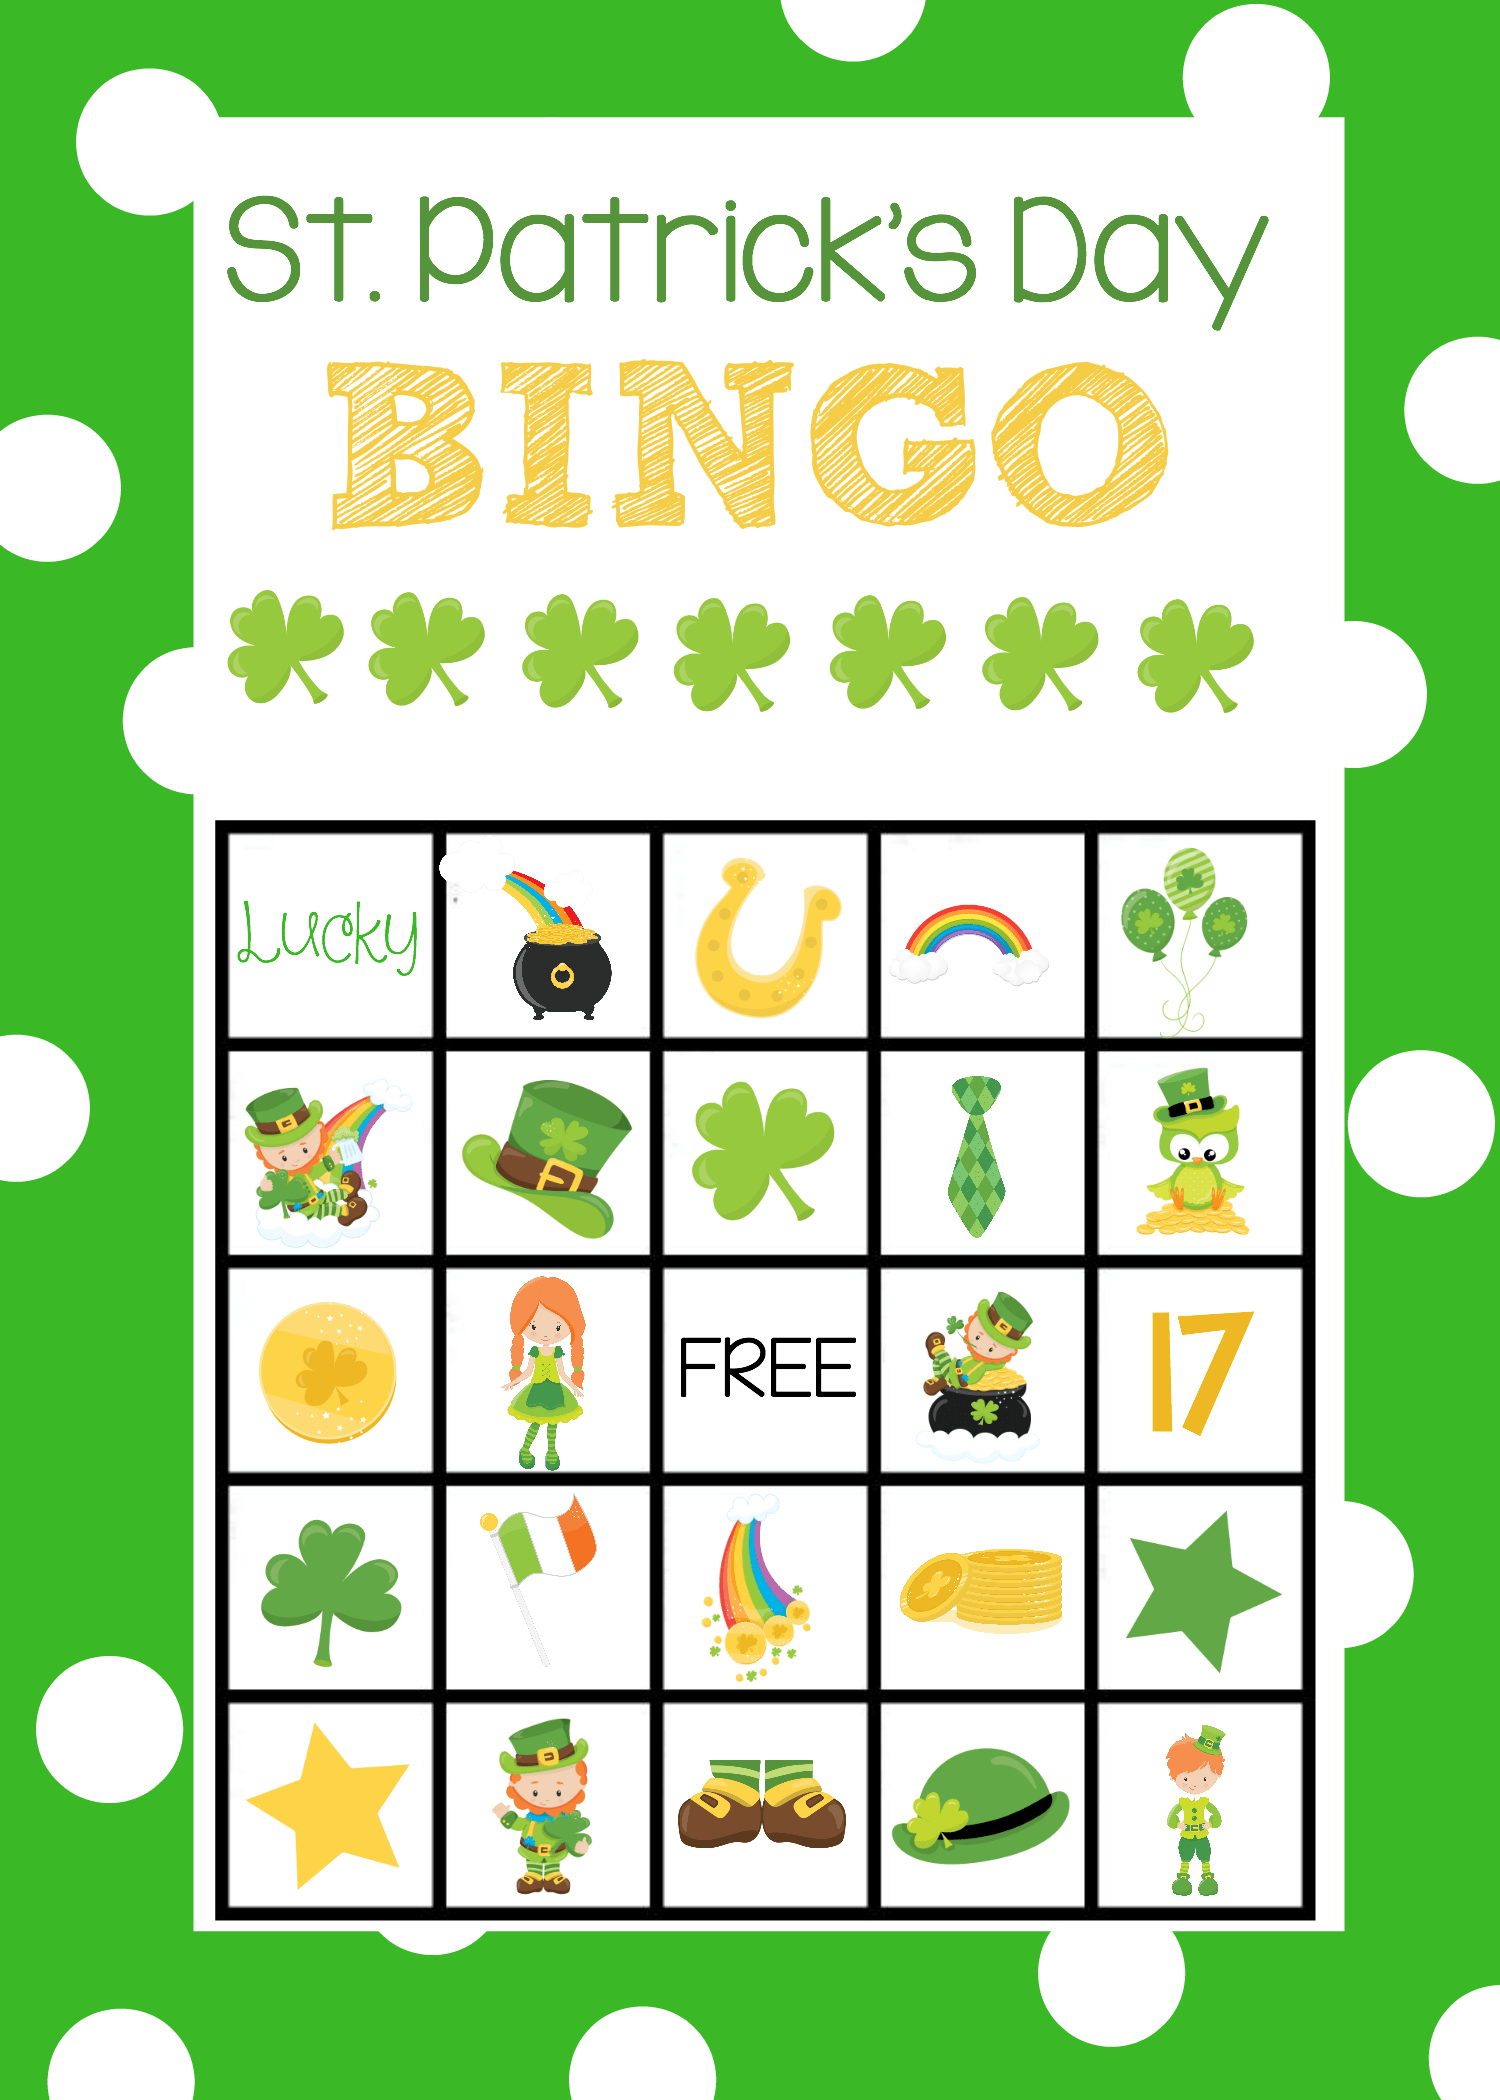 St. Patrick's Day Bingo Game